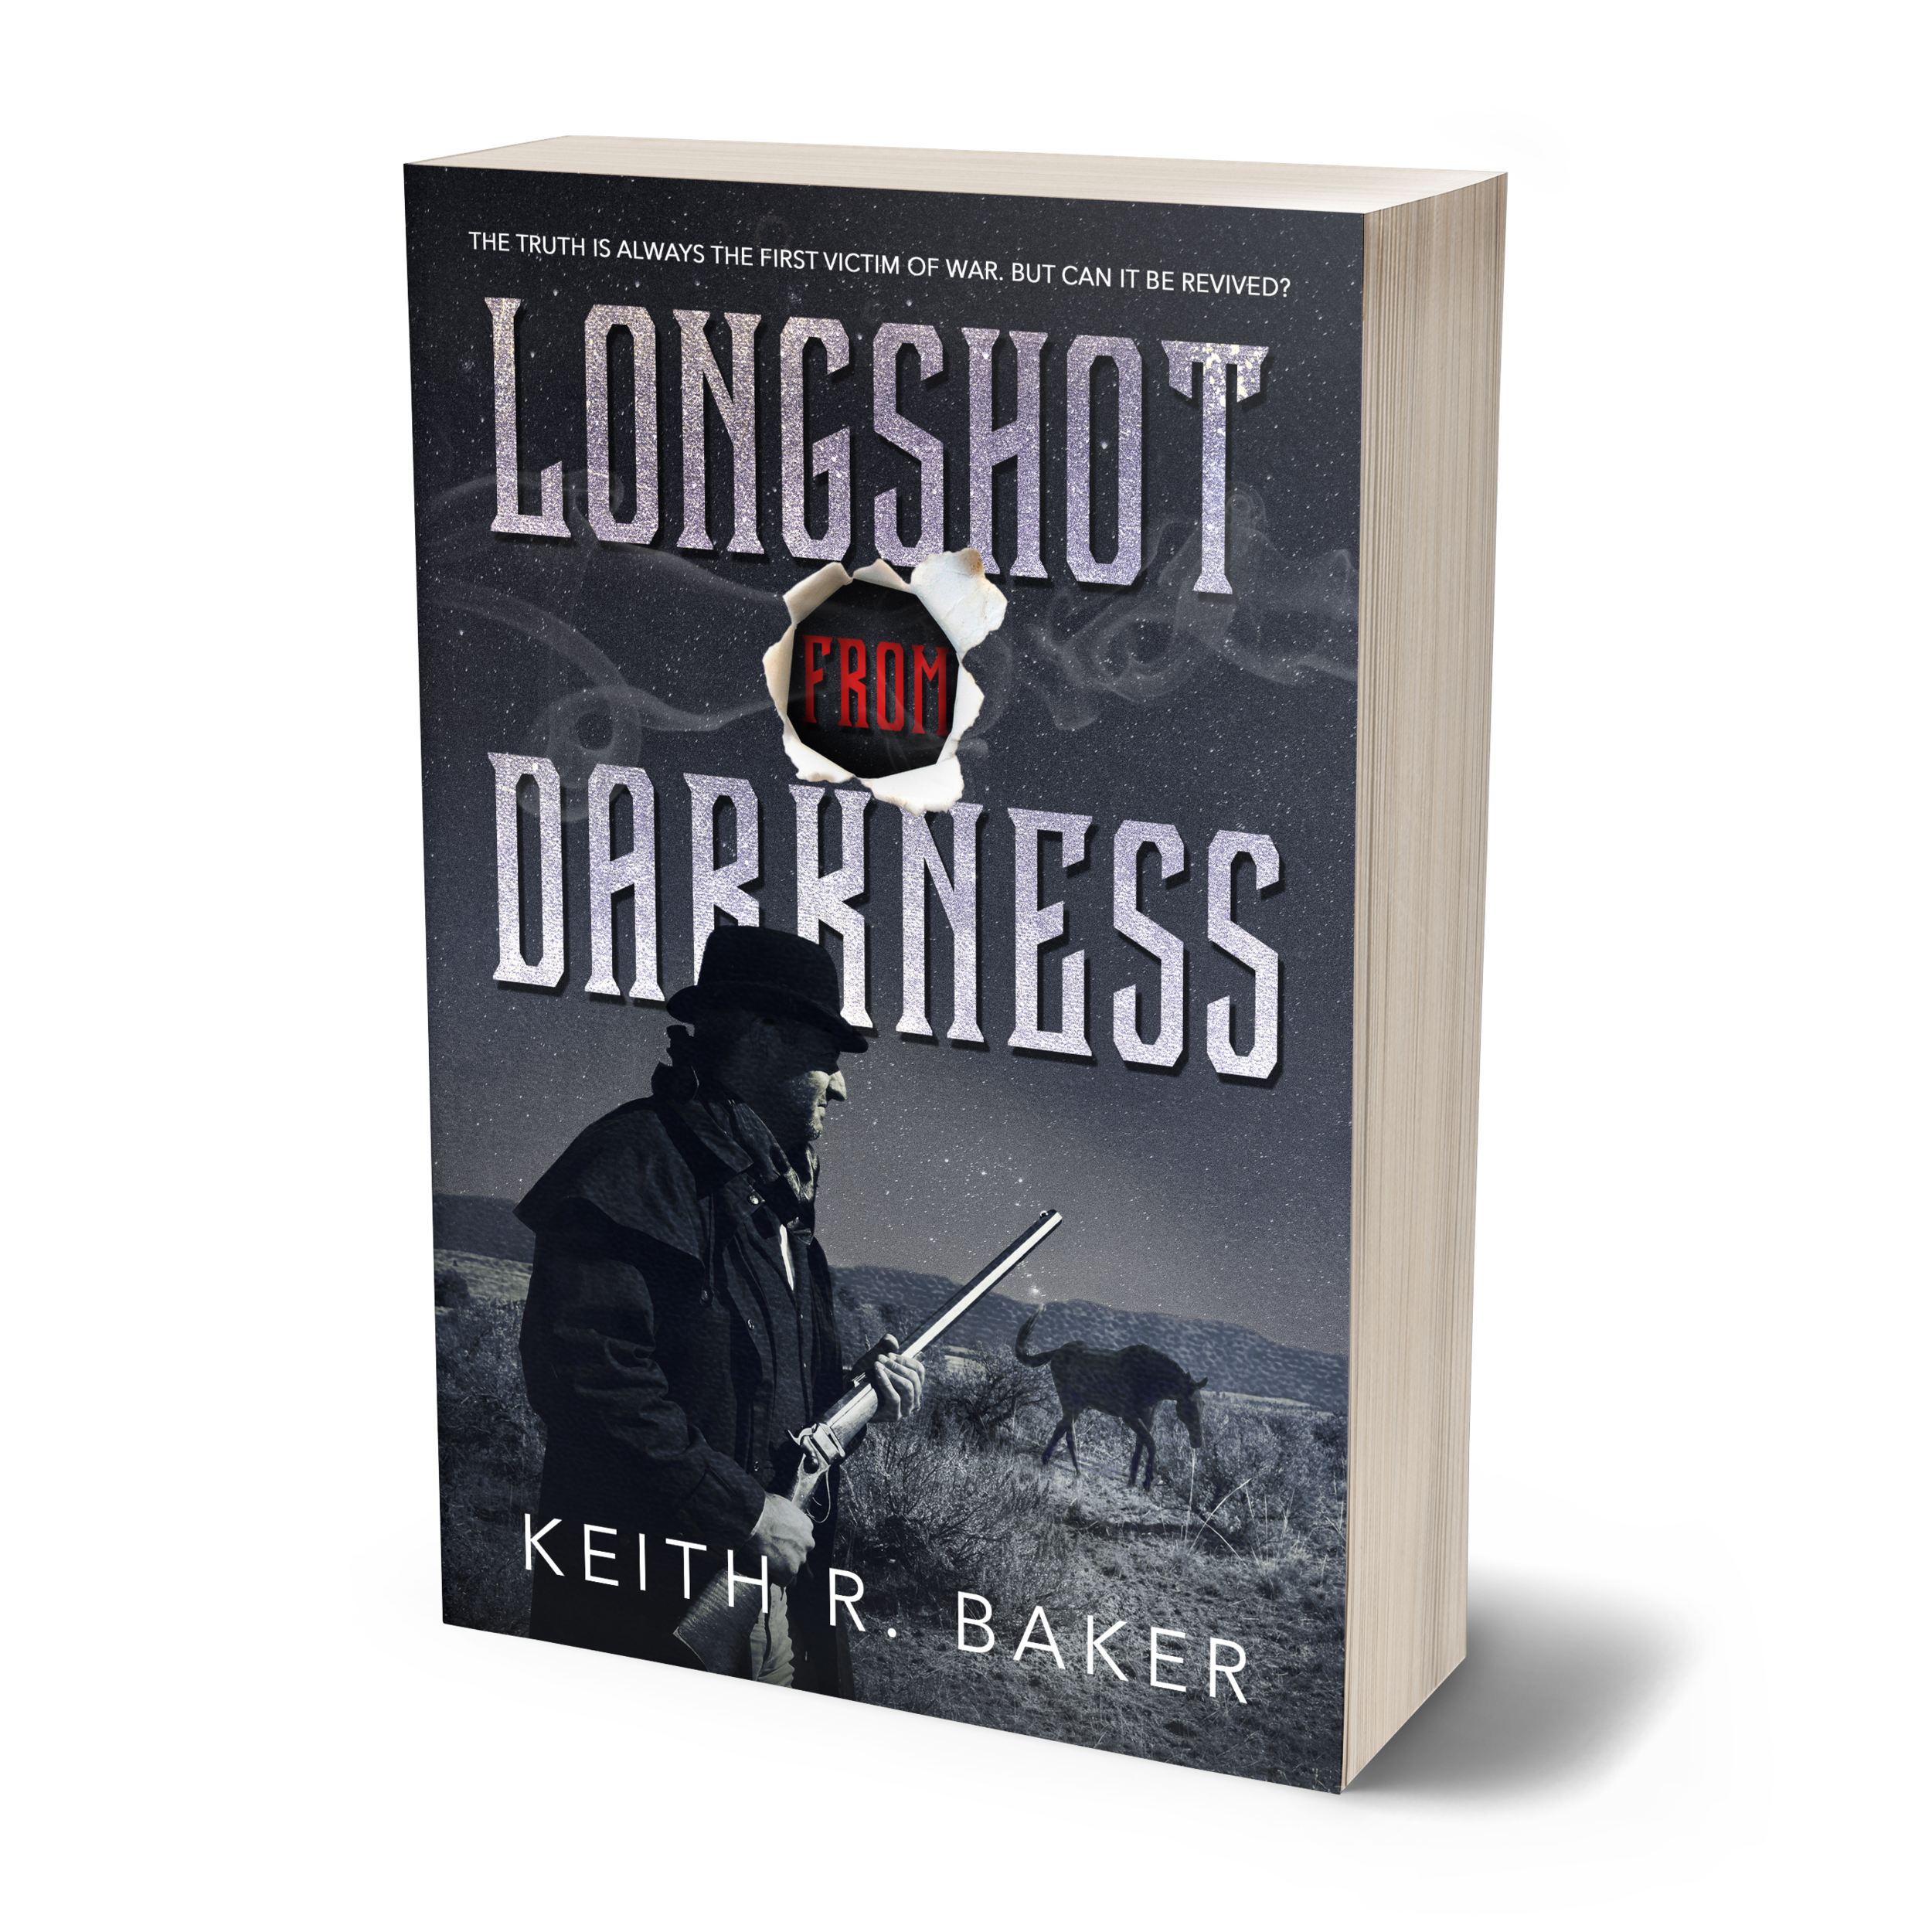 Longshot From Darkness by Keith R. Baker